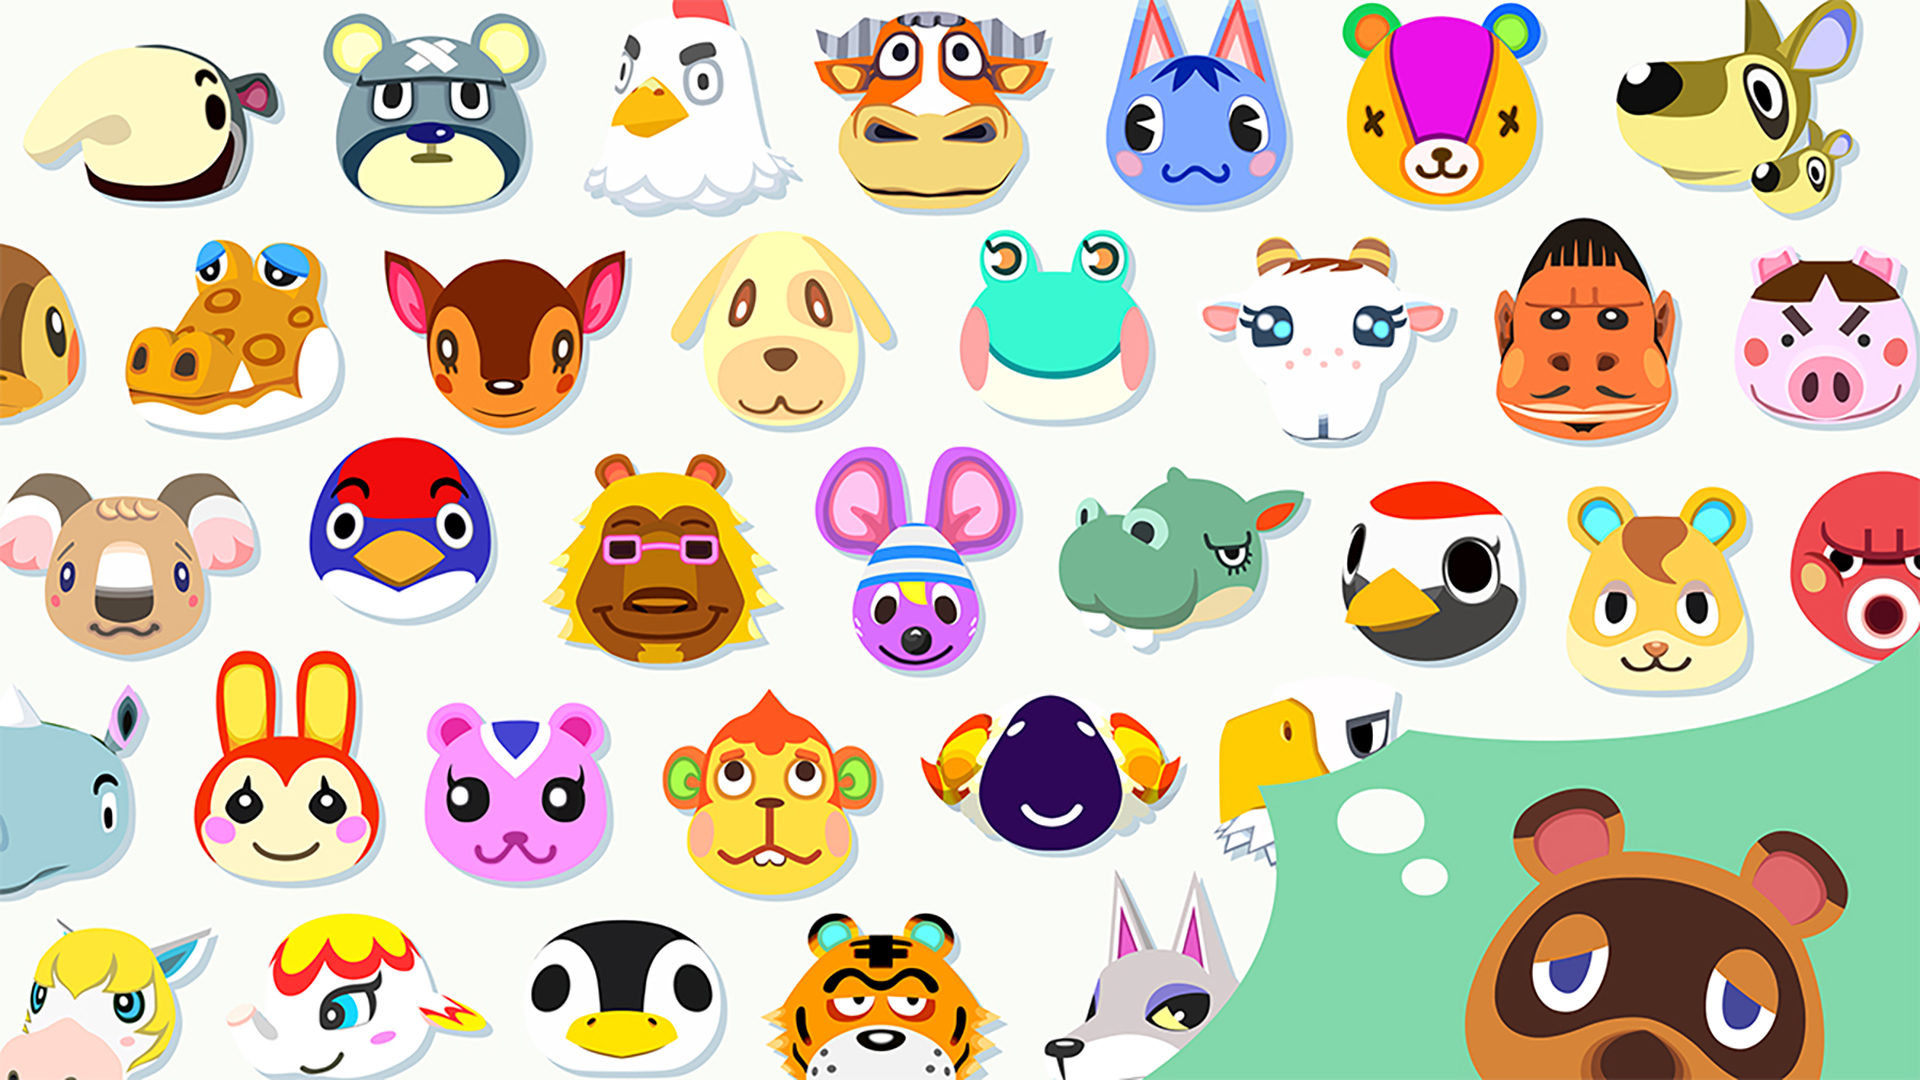 Animal Crossing New Horizons Includes 383 Villagers From The